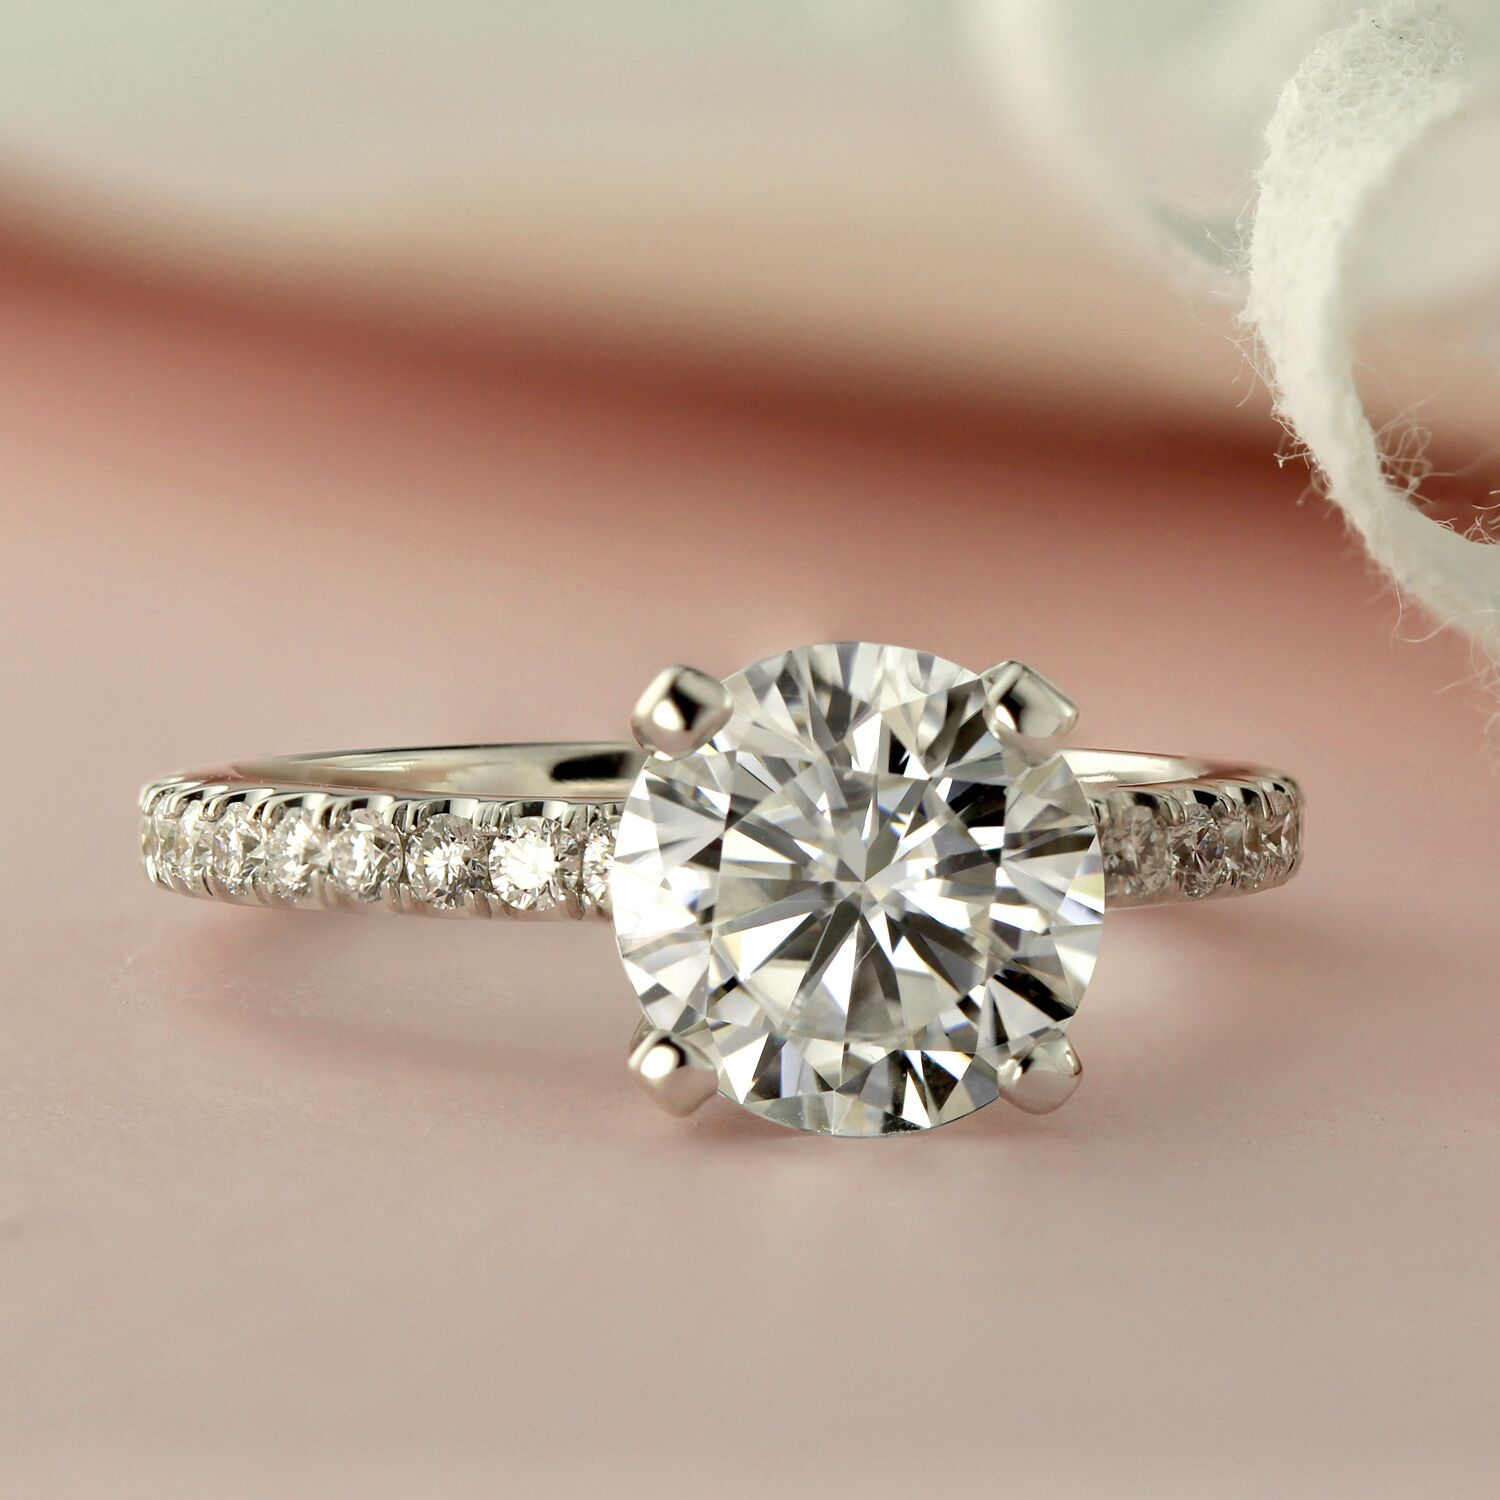 8 FAQ Questions About Lab Grown Diamond Rings